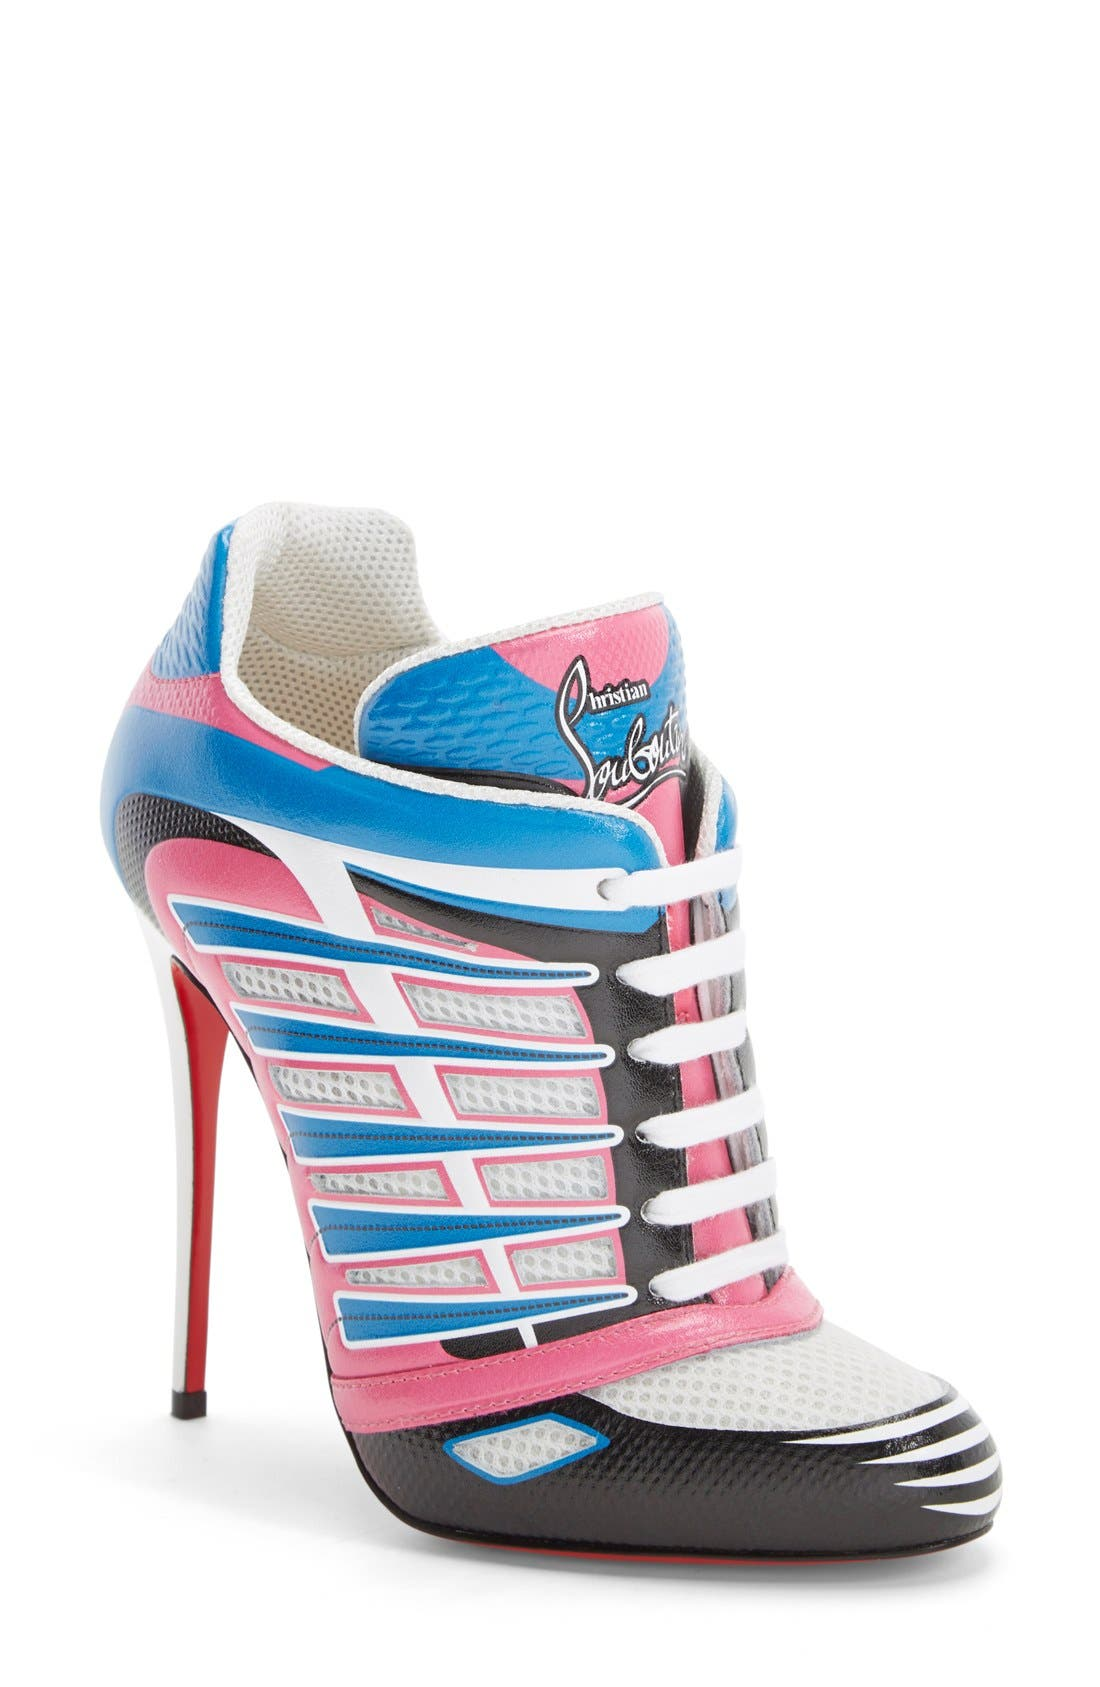 Alternate Image 1 Selected - Christian Louboutin 'Boltina' Lace-Up Bootie